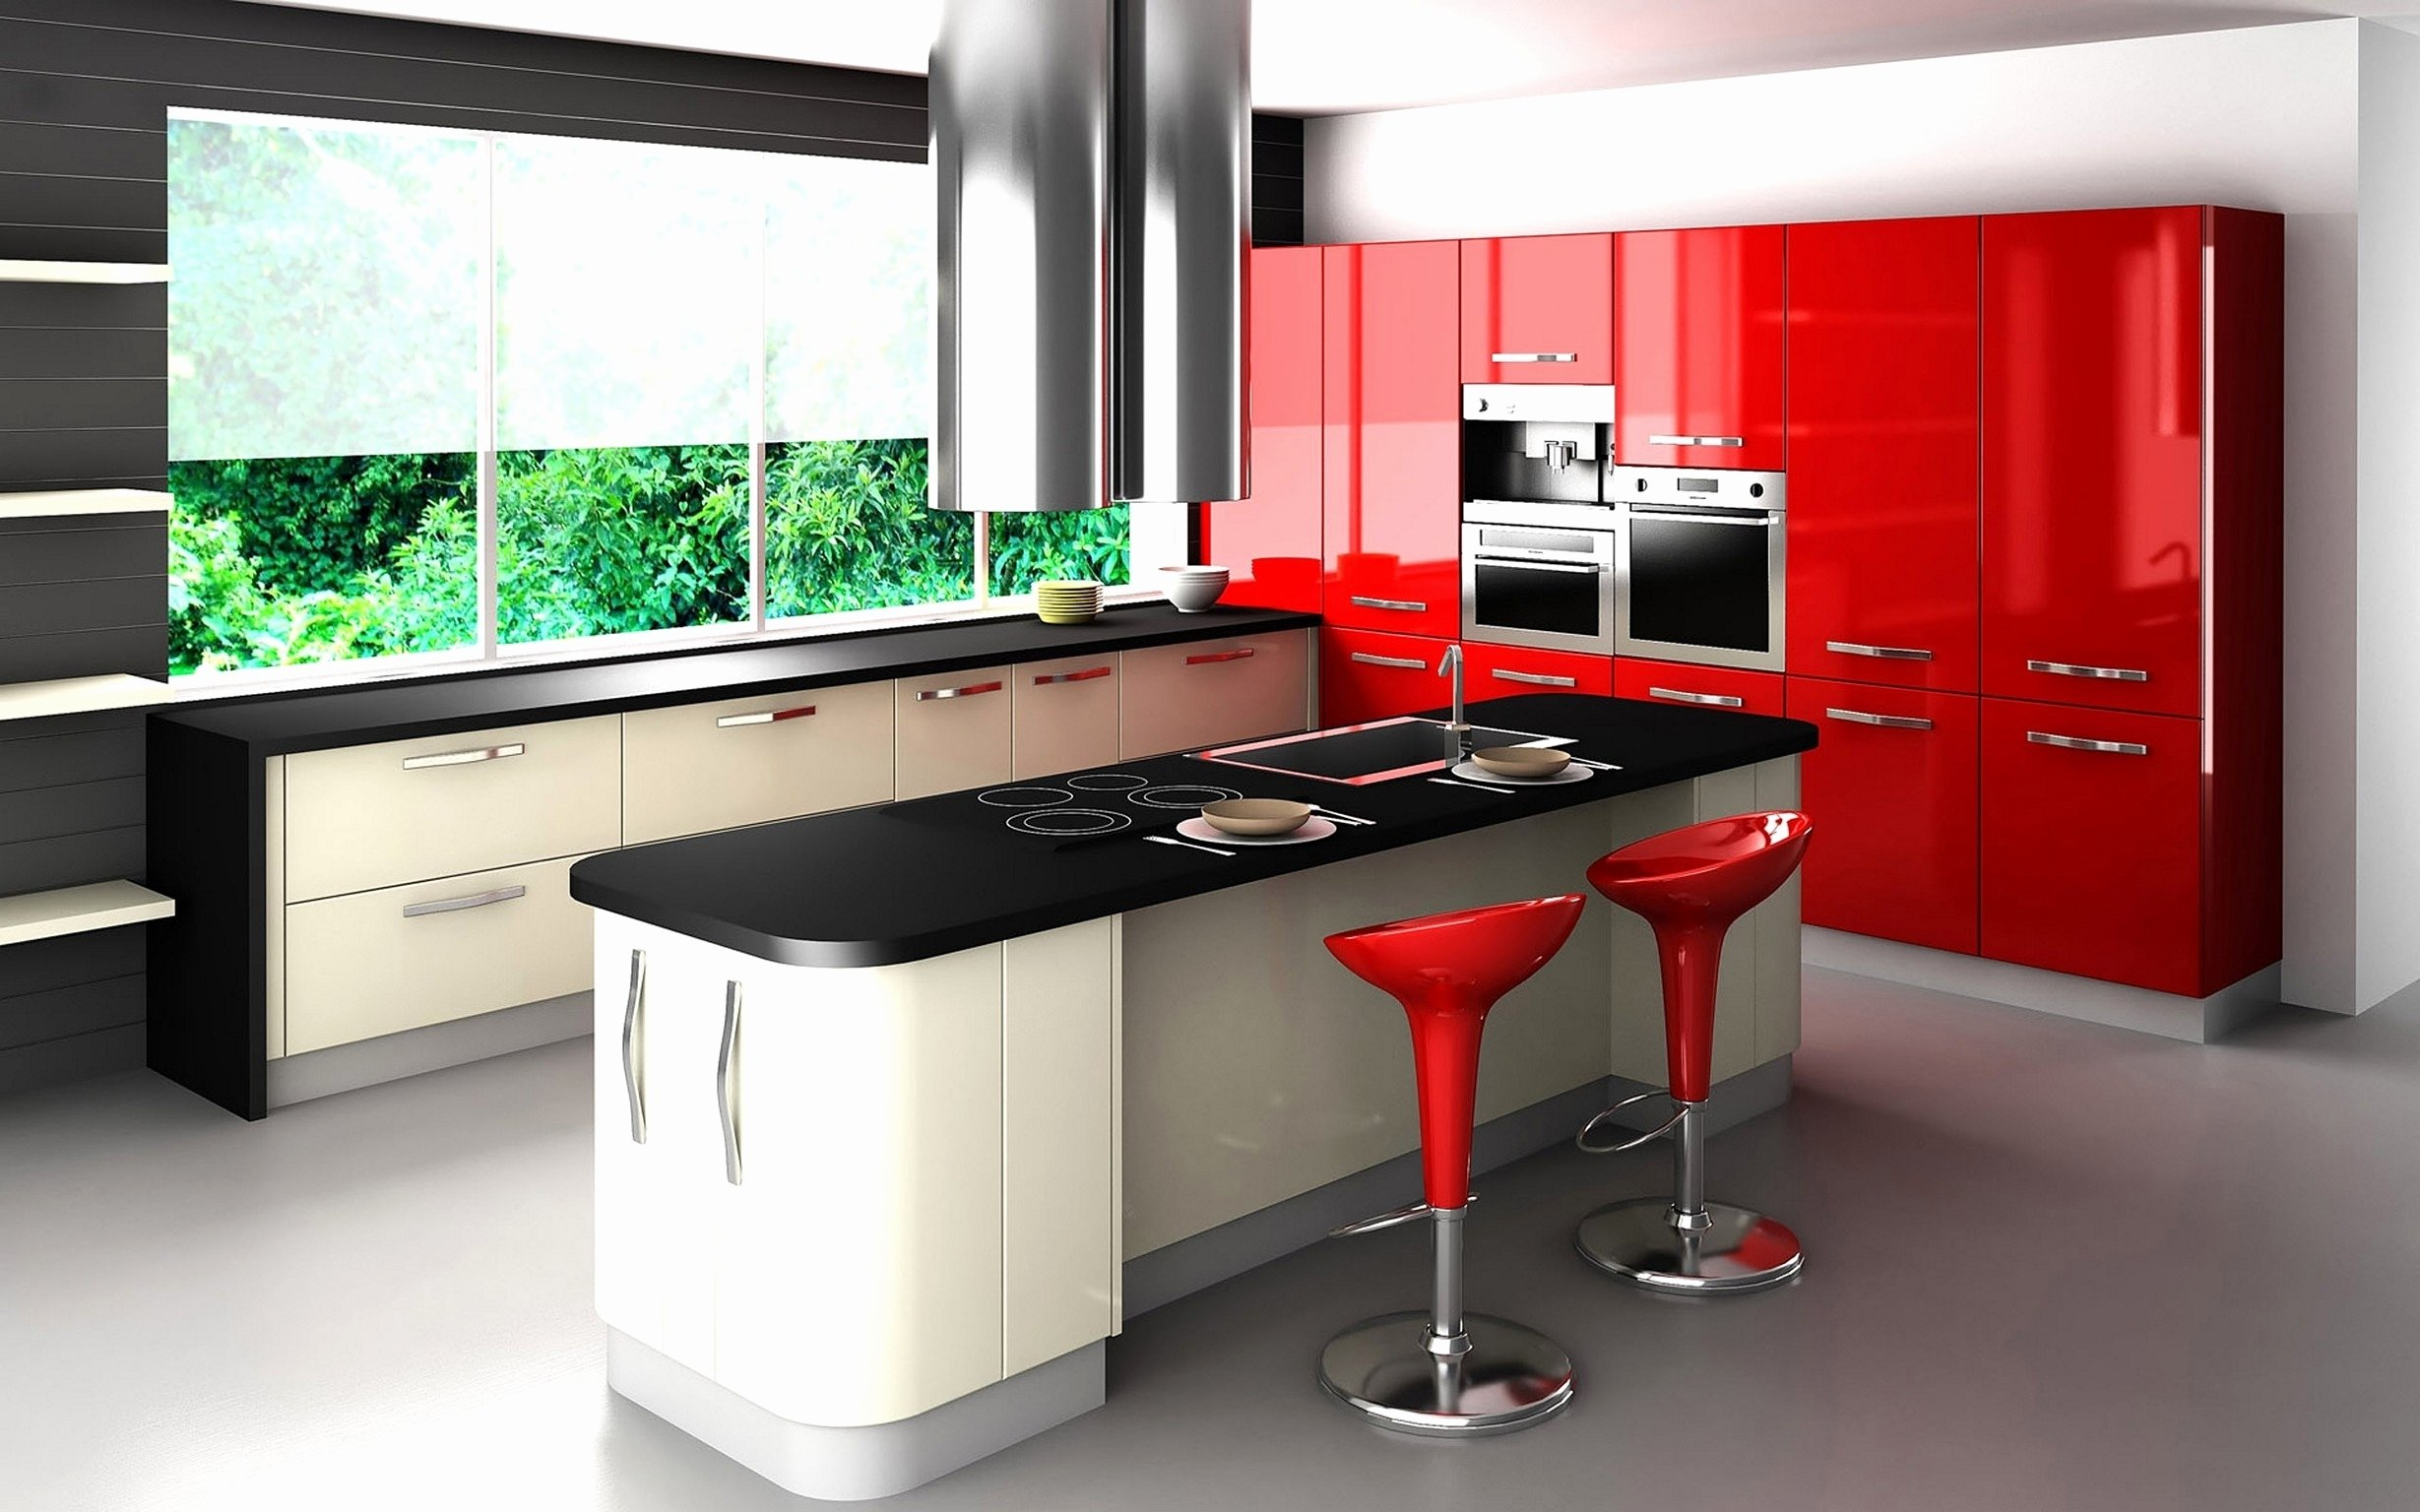 10 Attractive Red And Black Kitchen Ideas red black and white kitchen theme black white and red wall decor red 2021